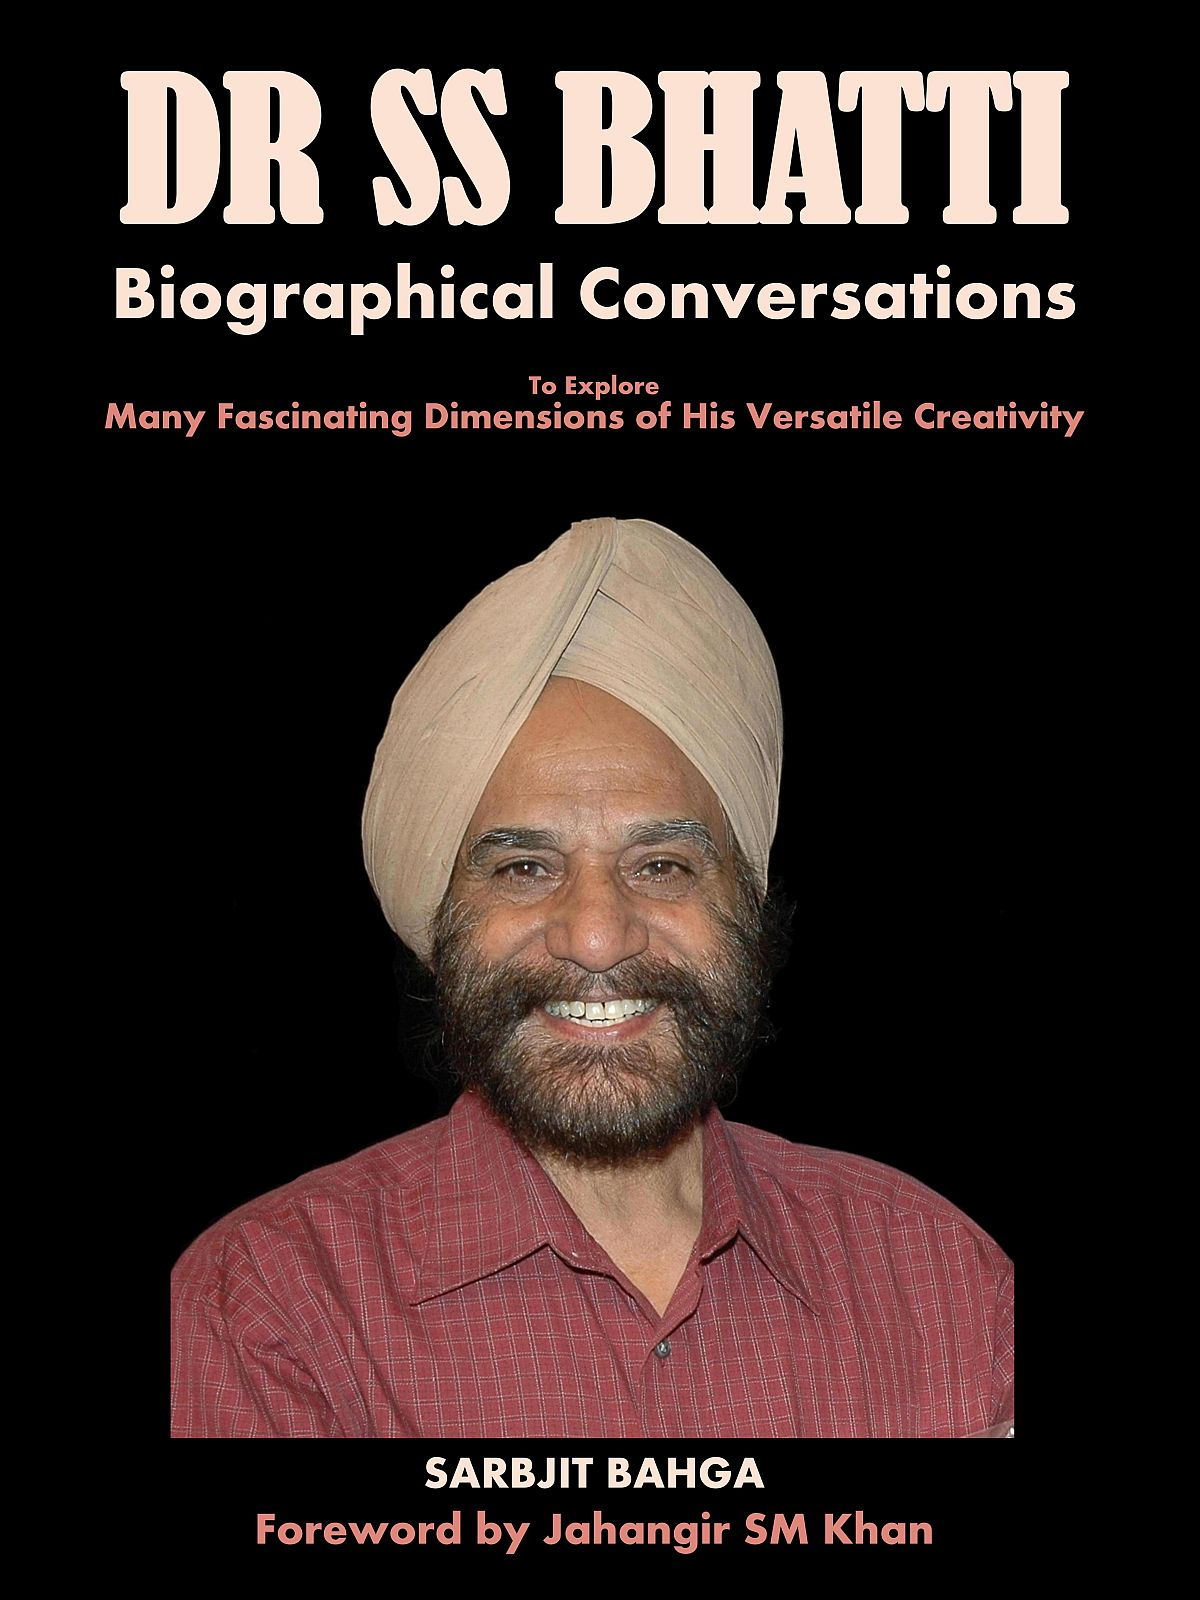 Book: Dr S.S.Bhatti: Biographical Conversations, authored by Sarbjit Bahga, Reviewed by Surinder Bahga 2